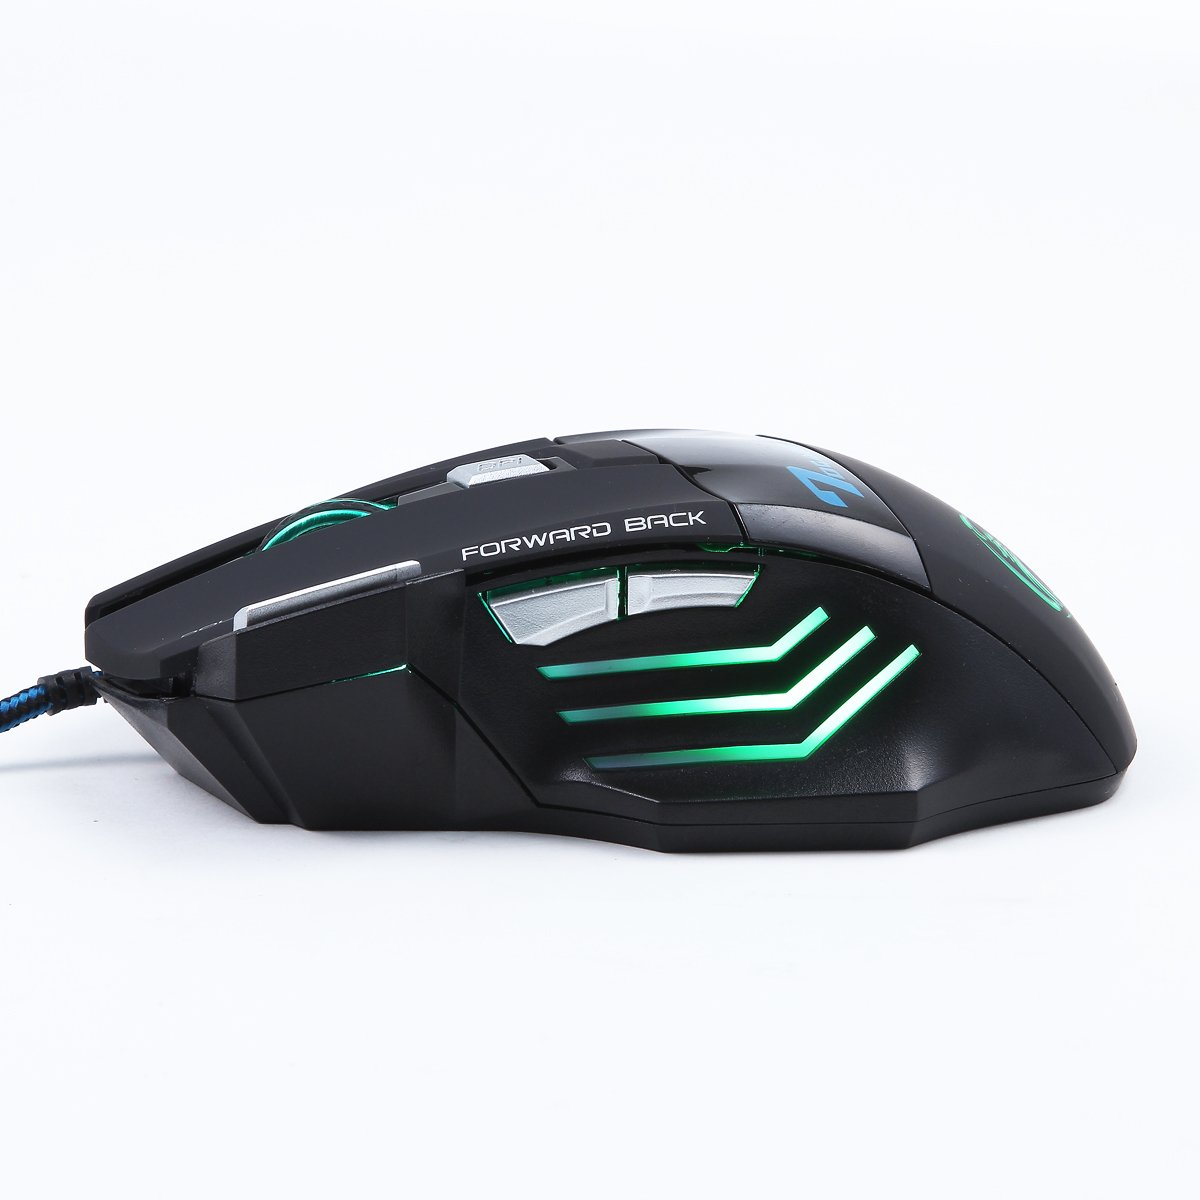 Klein Design / ESTONE X7 3200 DPI wired gaming mouse 7